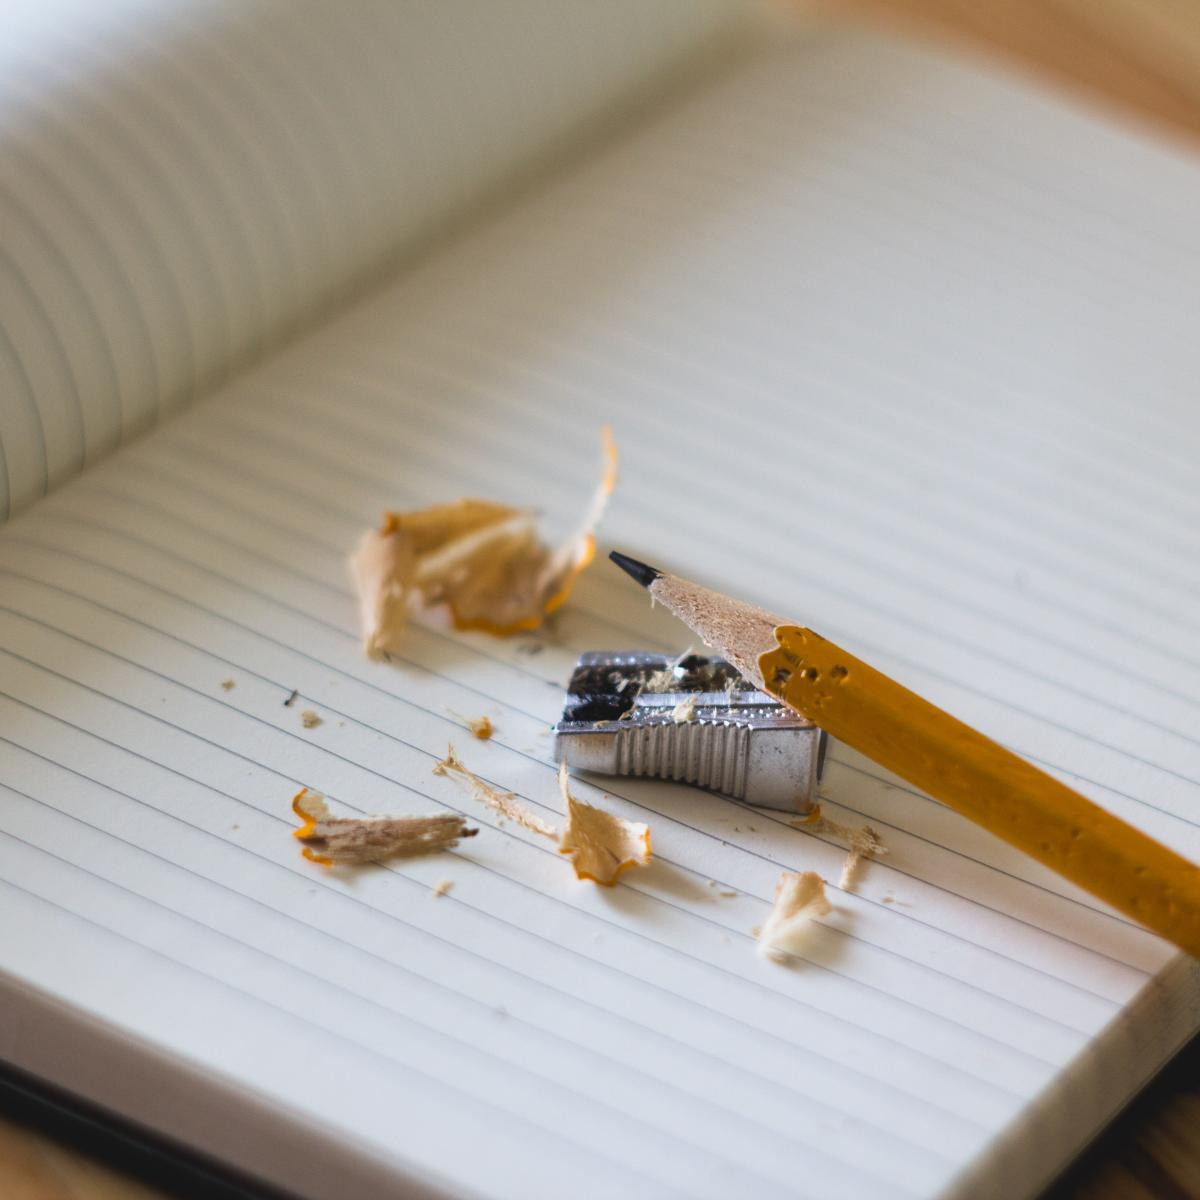 Photo of open notebook with blank lined pages sitting on a desk. On the page is a pencil and pencil shavings. Photo by Angelina Litvin from StockSnap.io